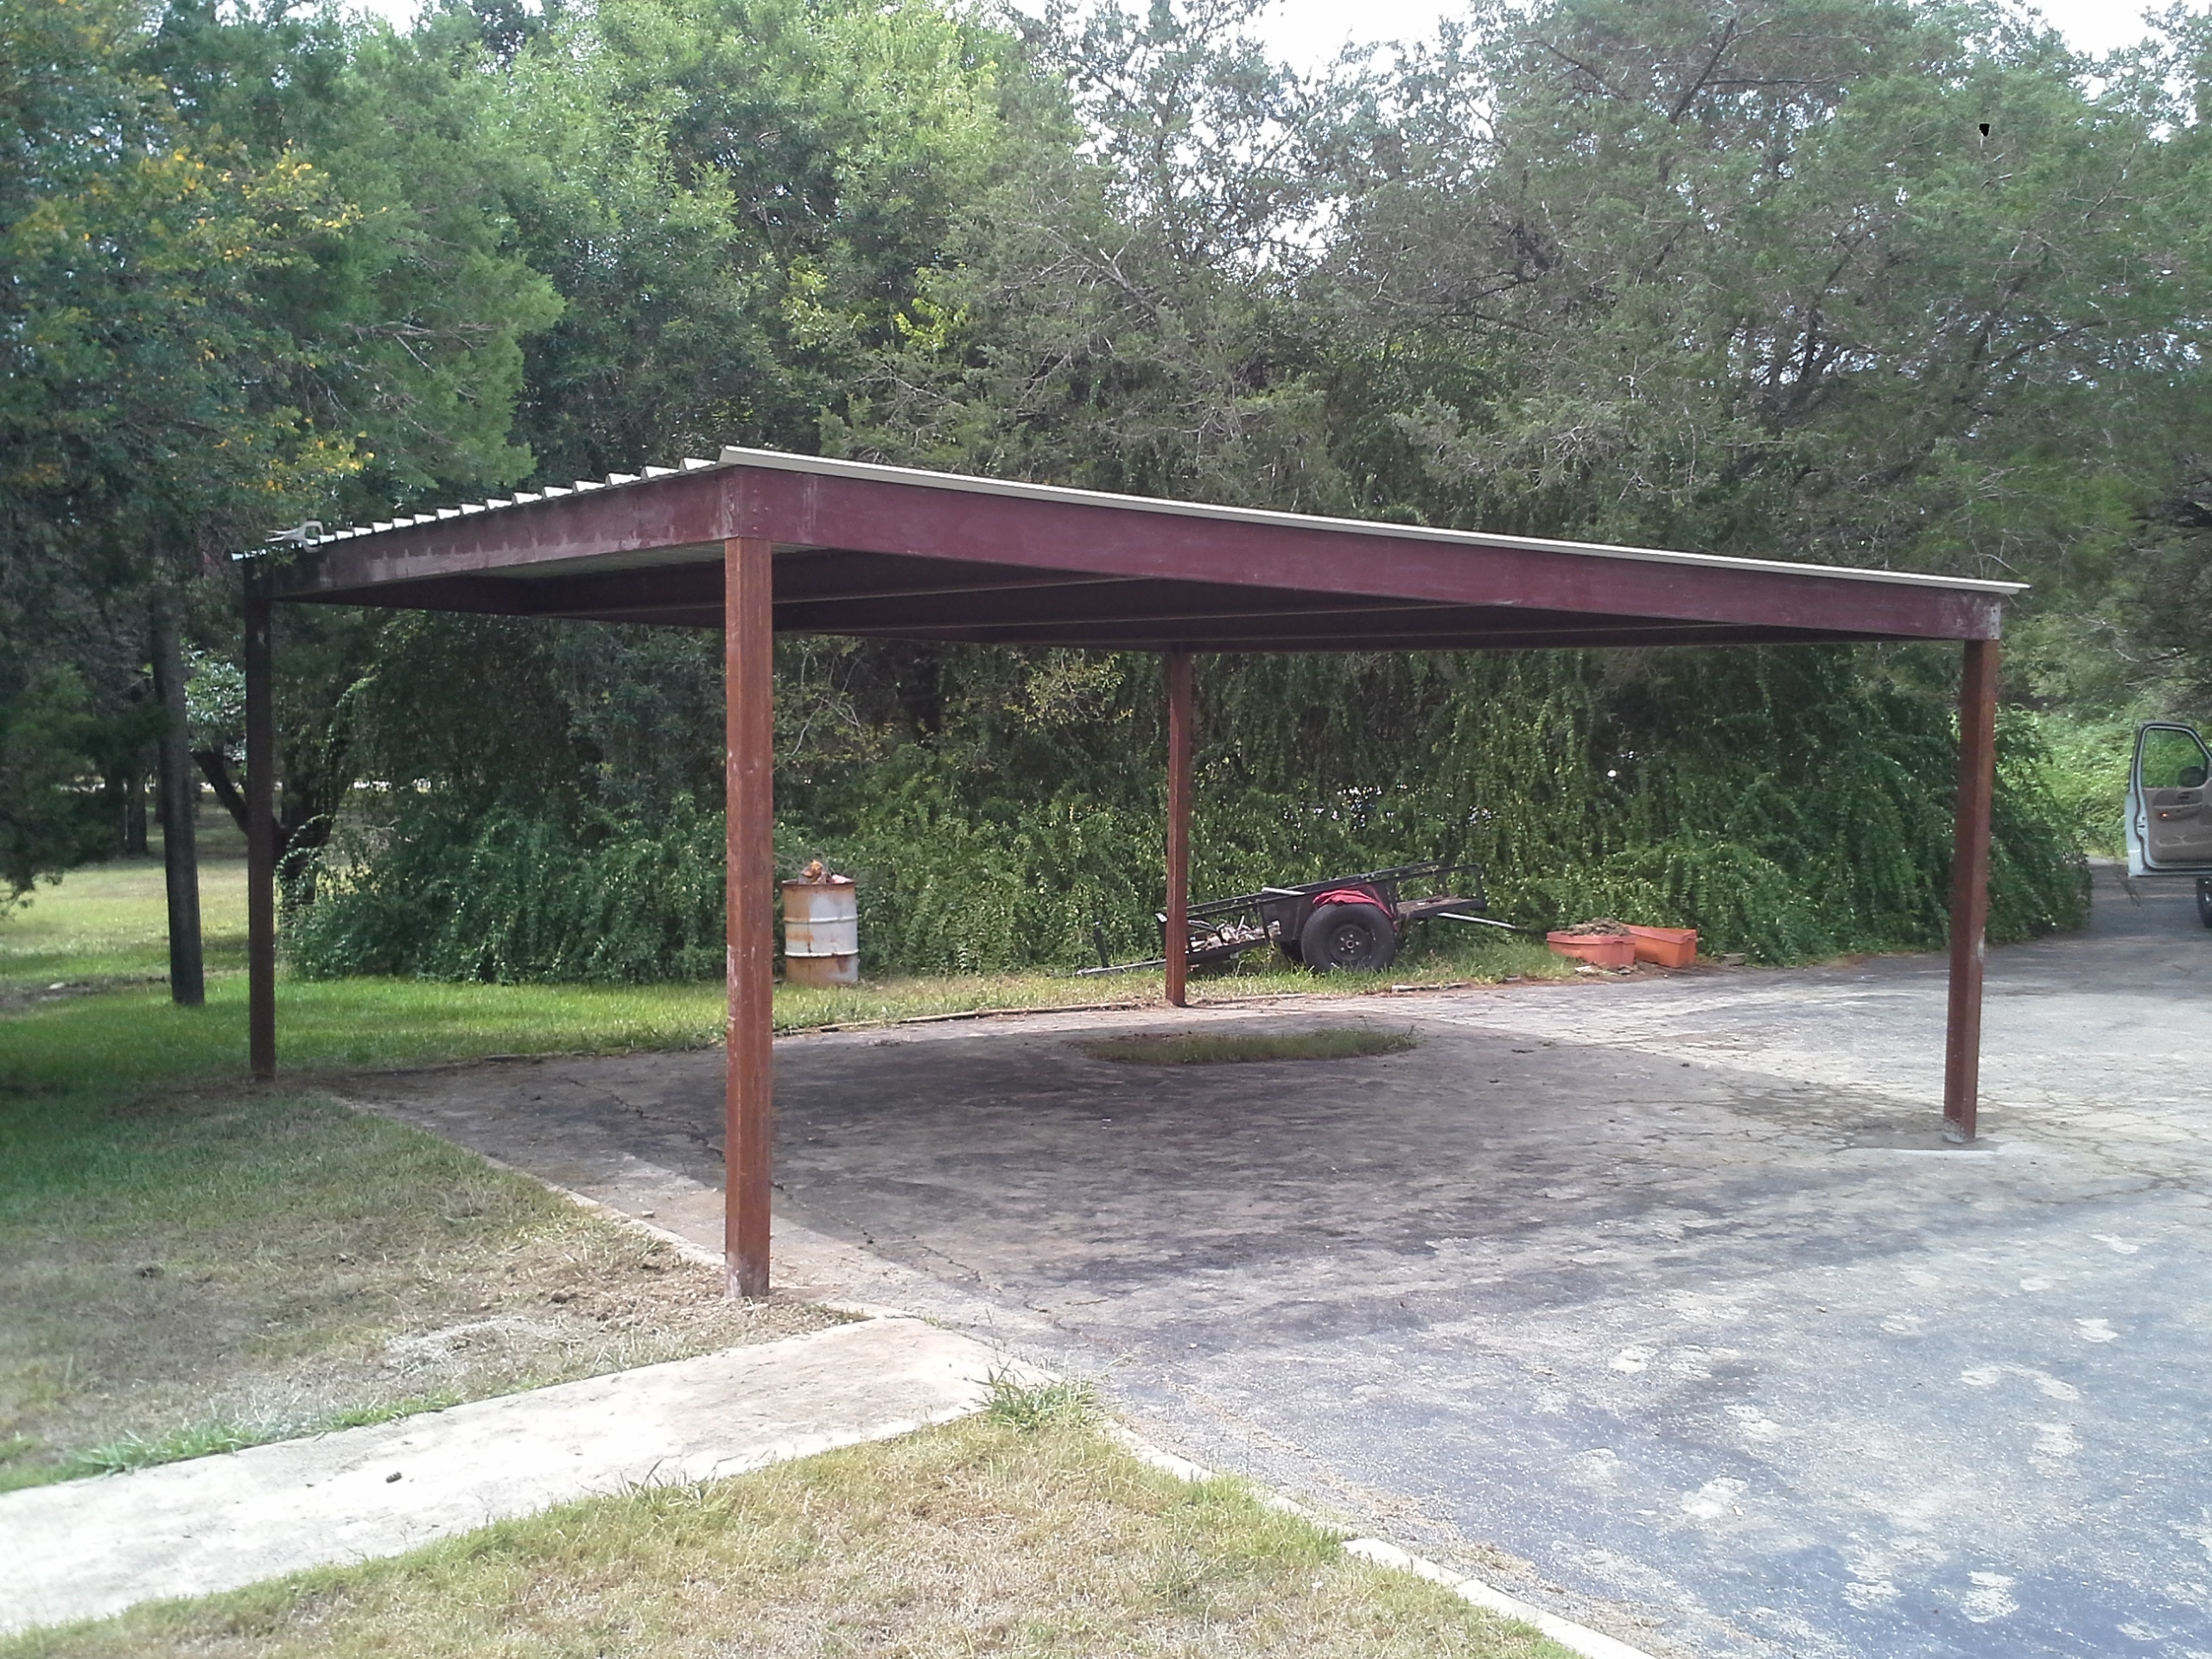 20 x 20 carport free standing 11 Carport Patio Covers Awnings